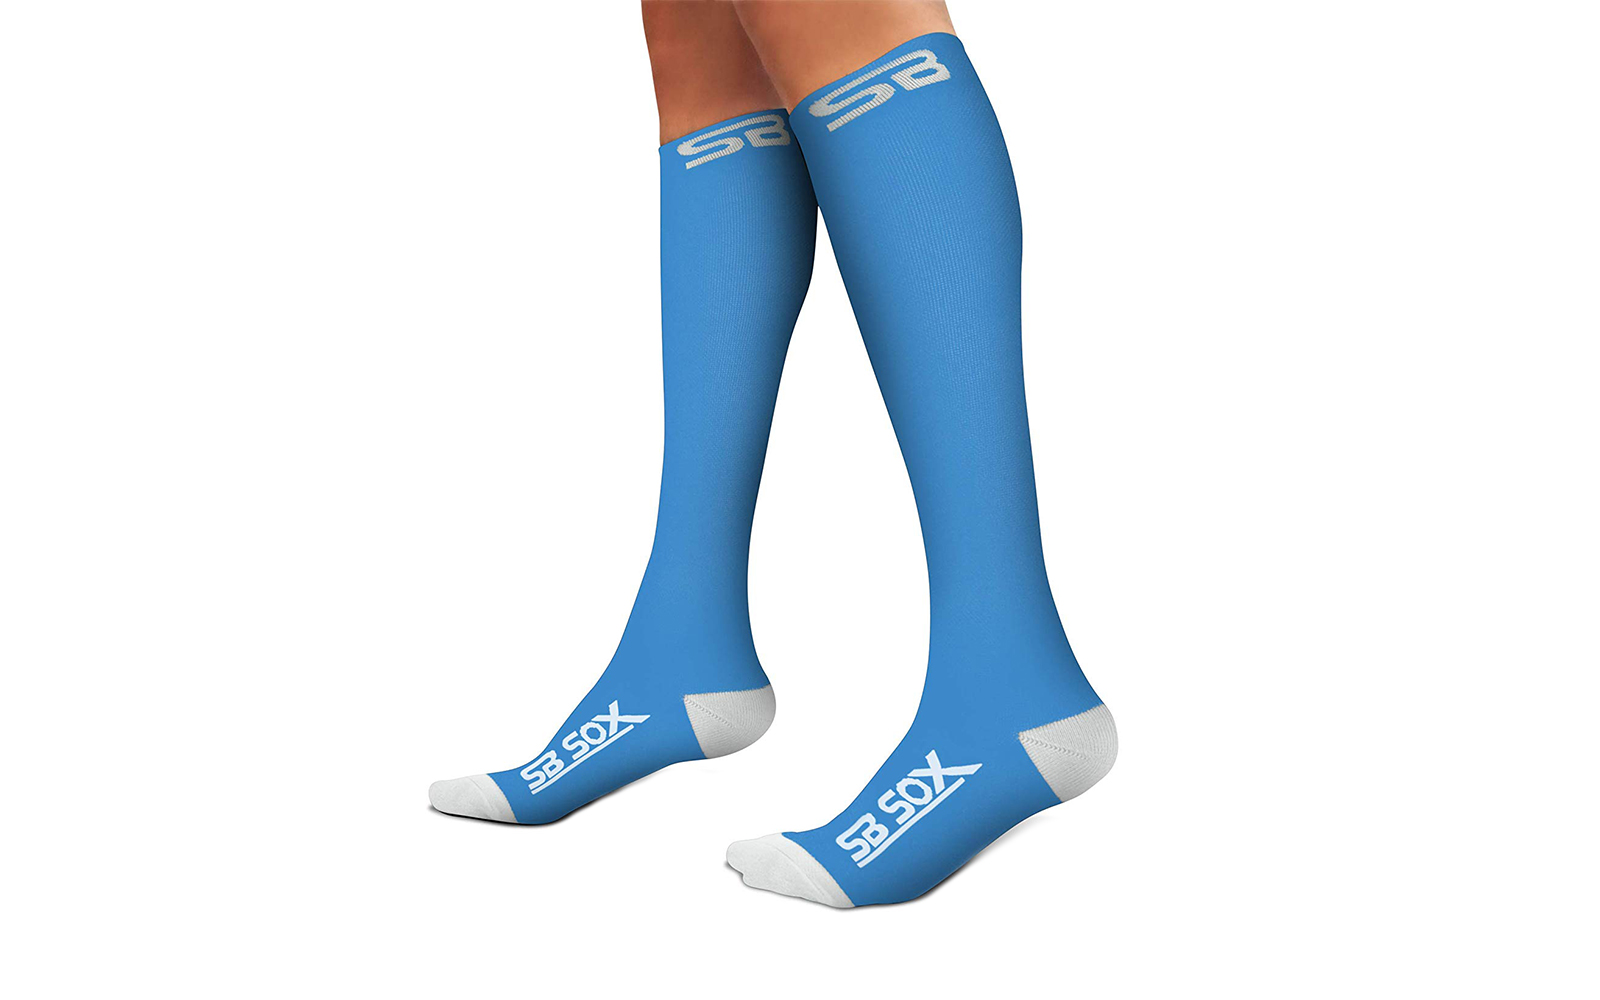 Amazon SB SOX Compression Socks blue and white